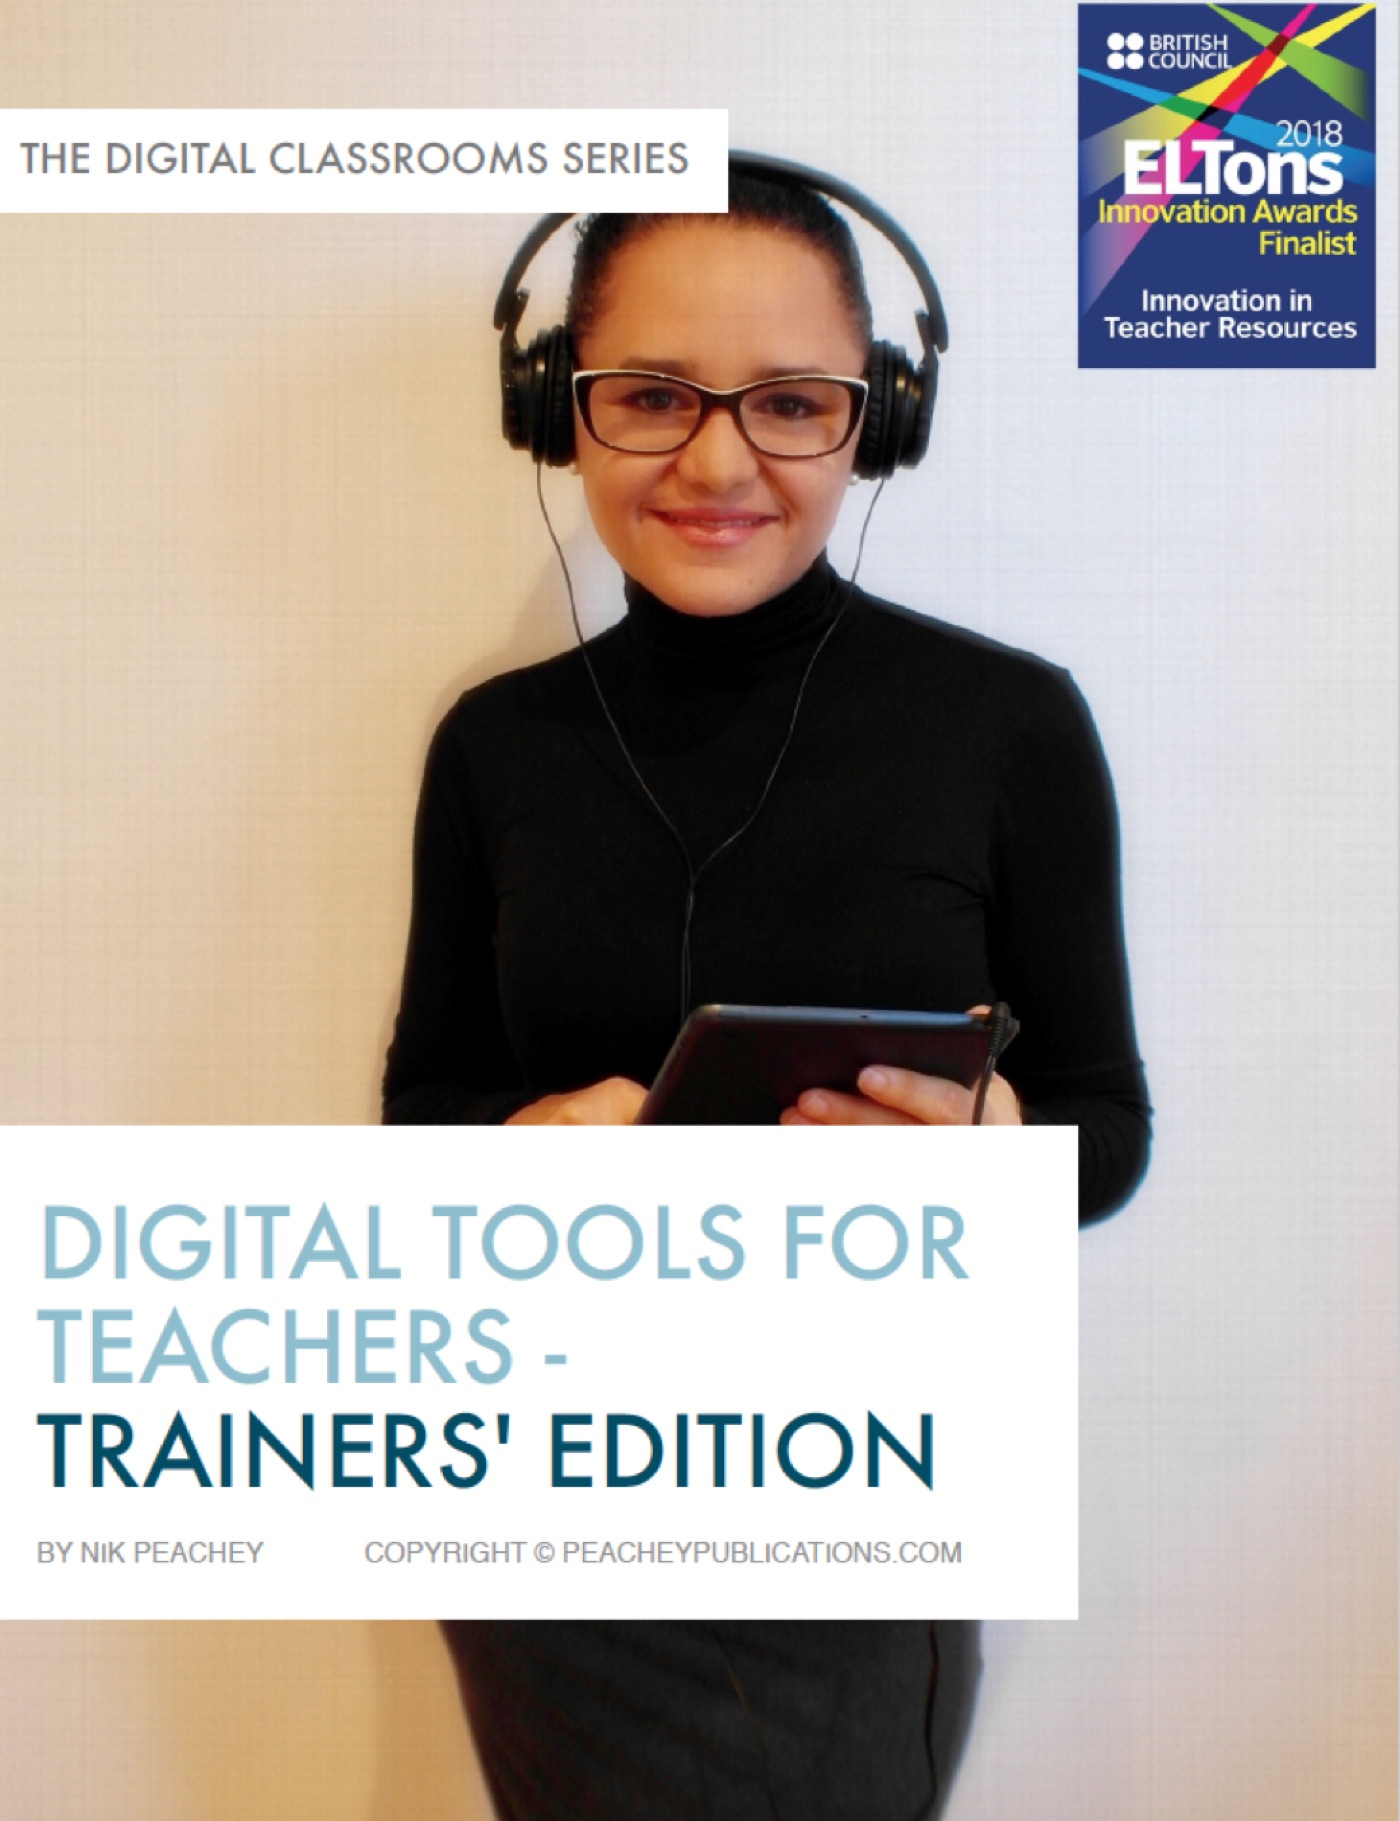 Book Cover - Digital Tools for Teachers - Trainers' Edition